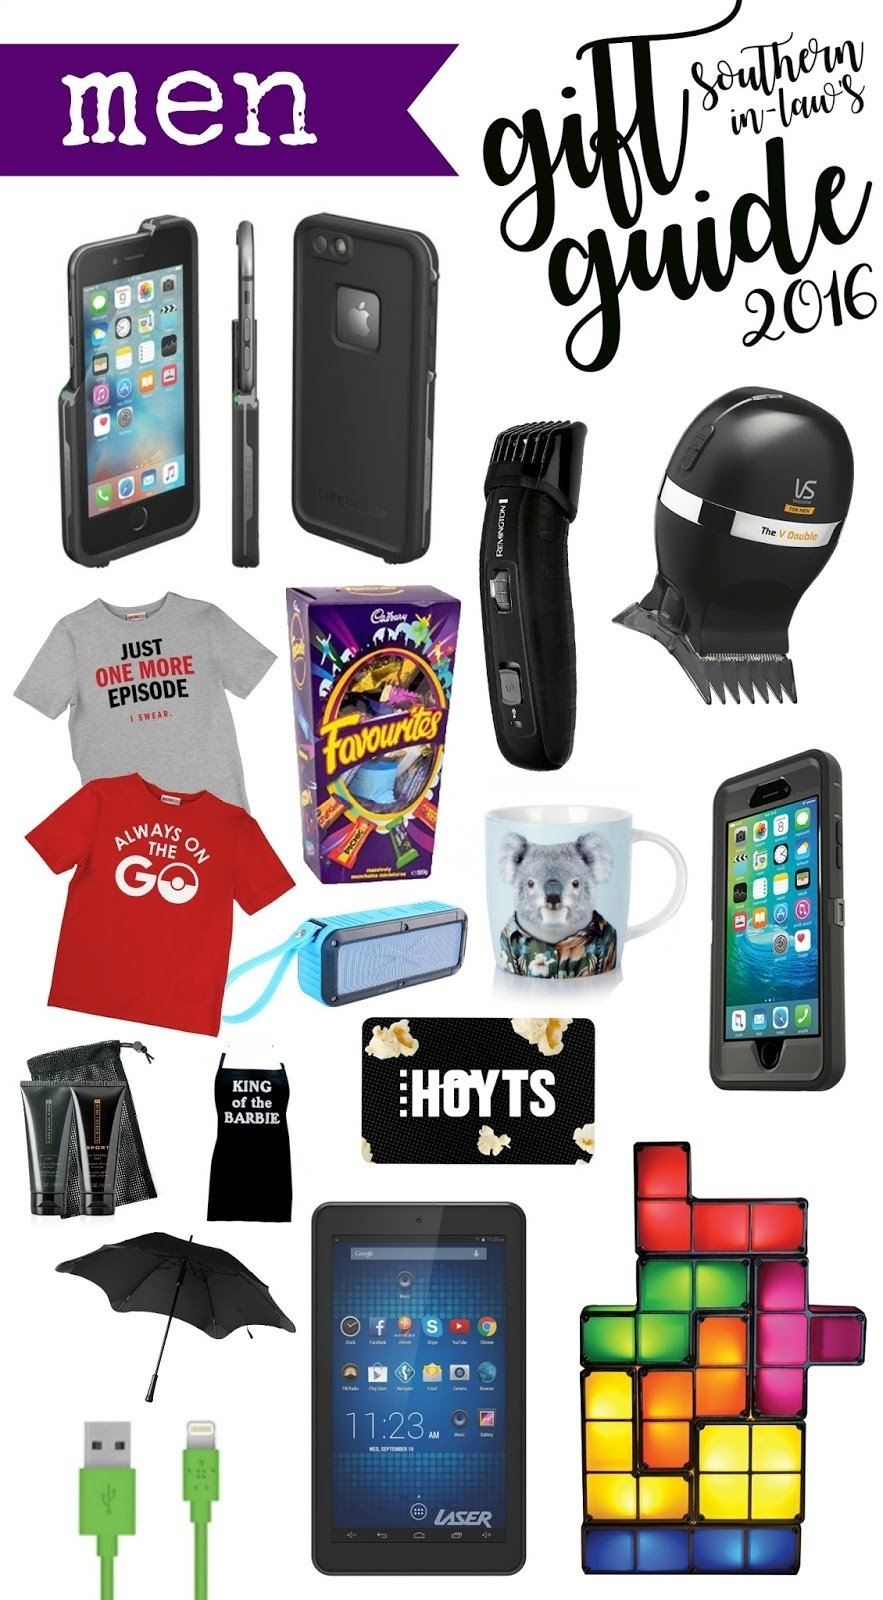 10 Ideal Christmas Gift Ideas For Brothers southern in law 2016 mens christmas gift guide 5 2020